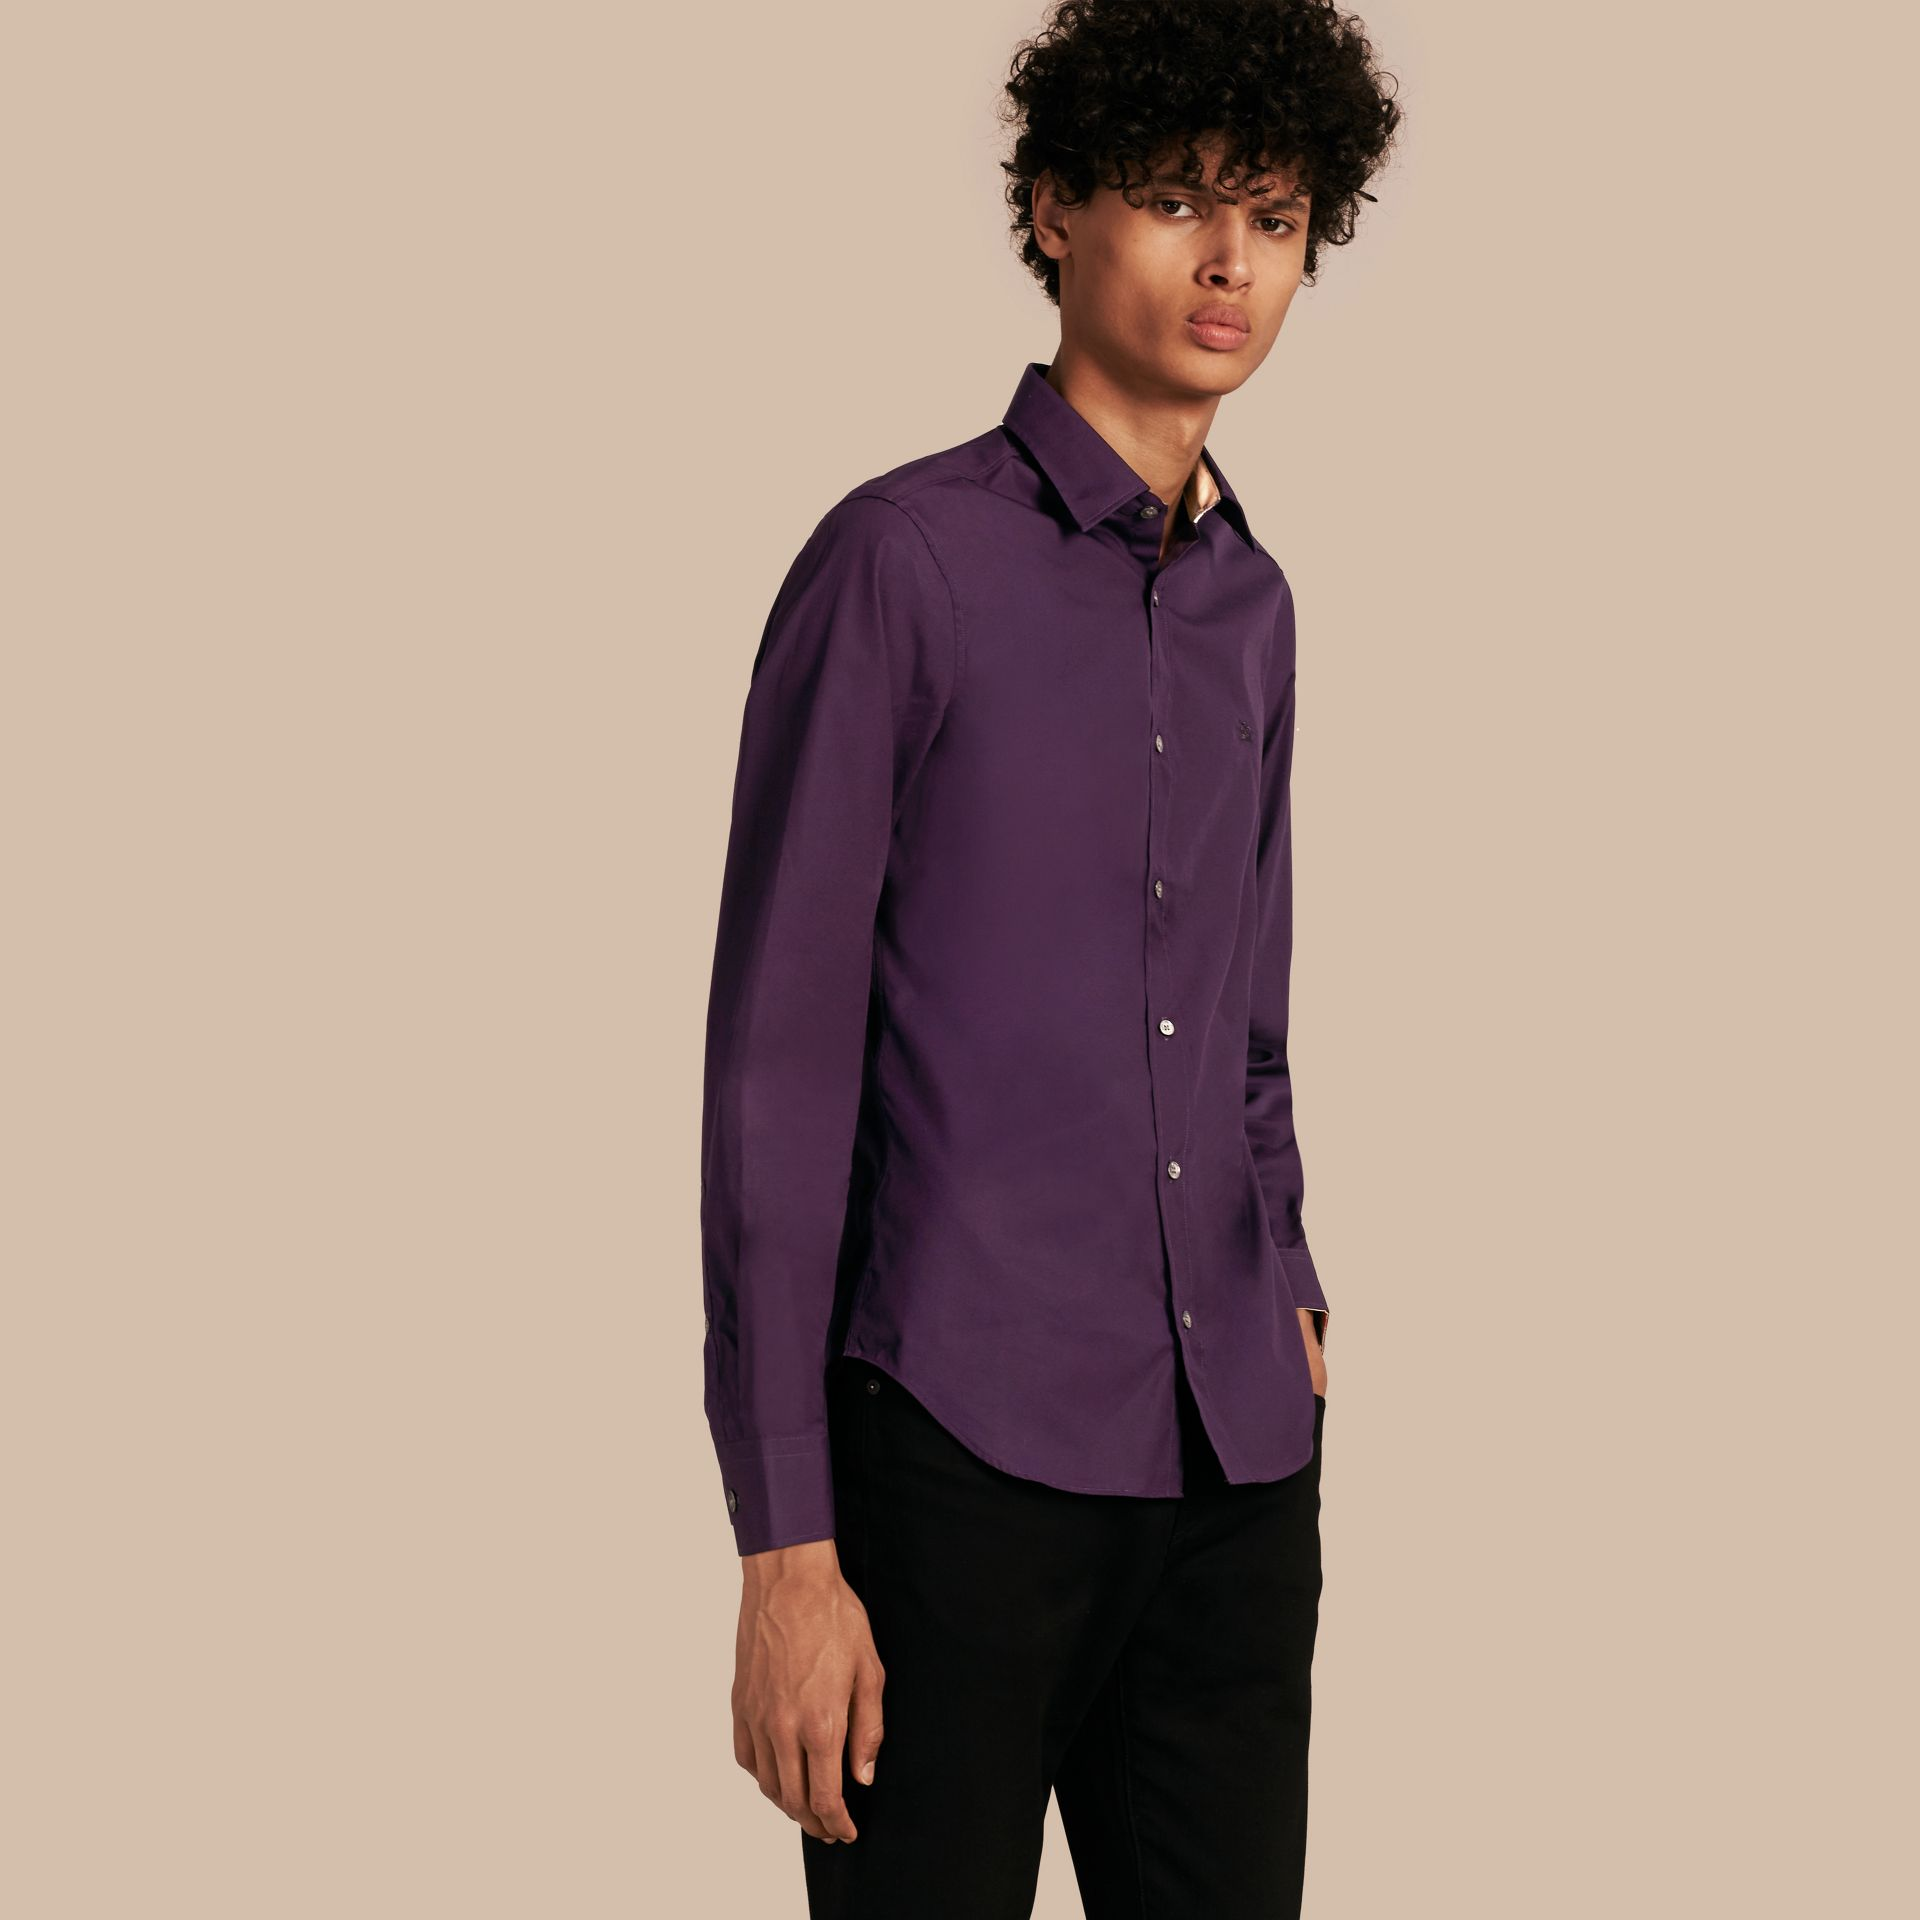 Dark purple Check Detail Stretch Cotton Poplin Shirt Dark Purple - gallery image 1